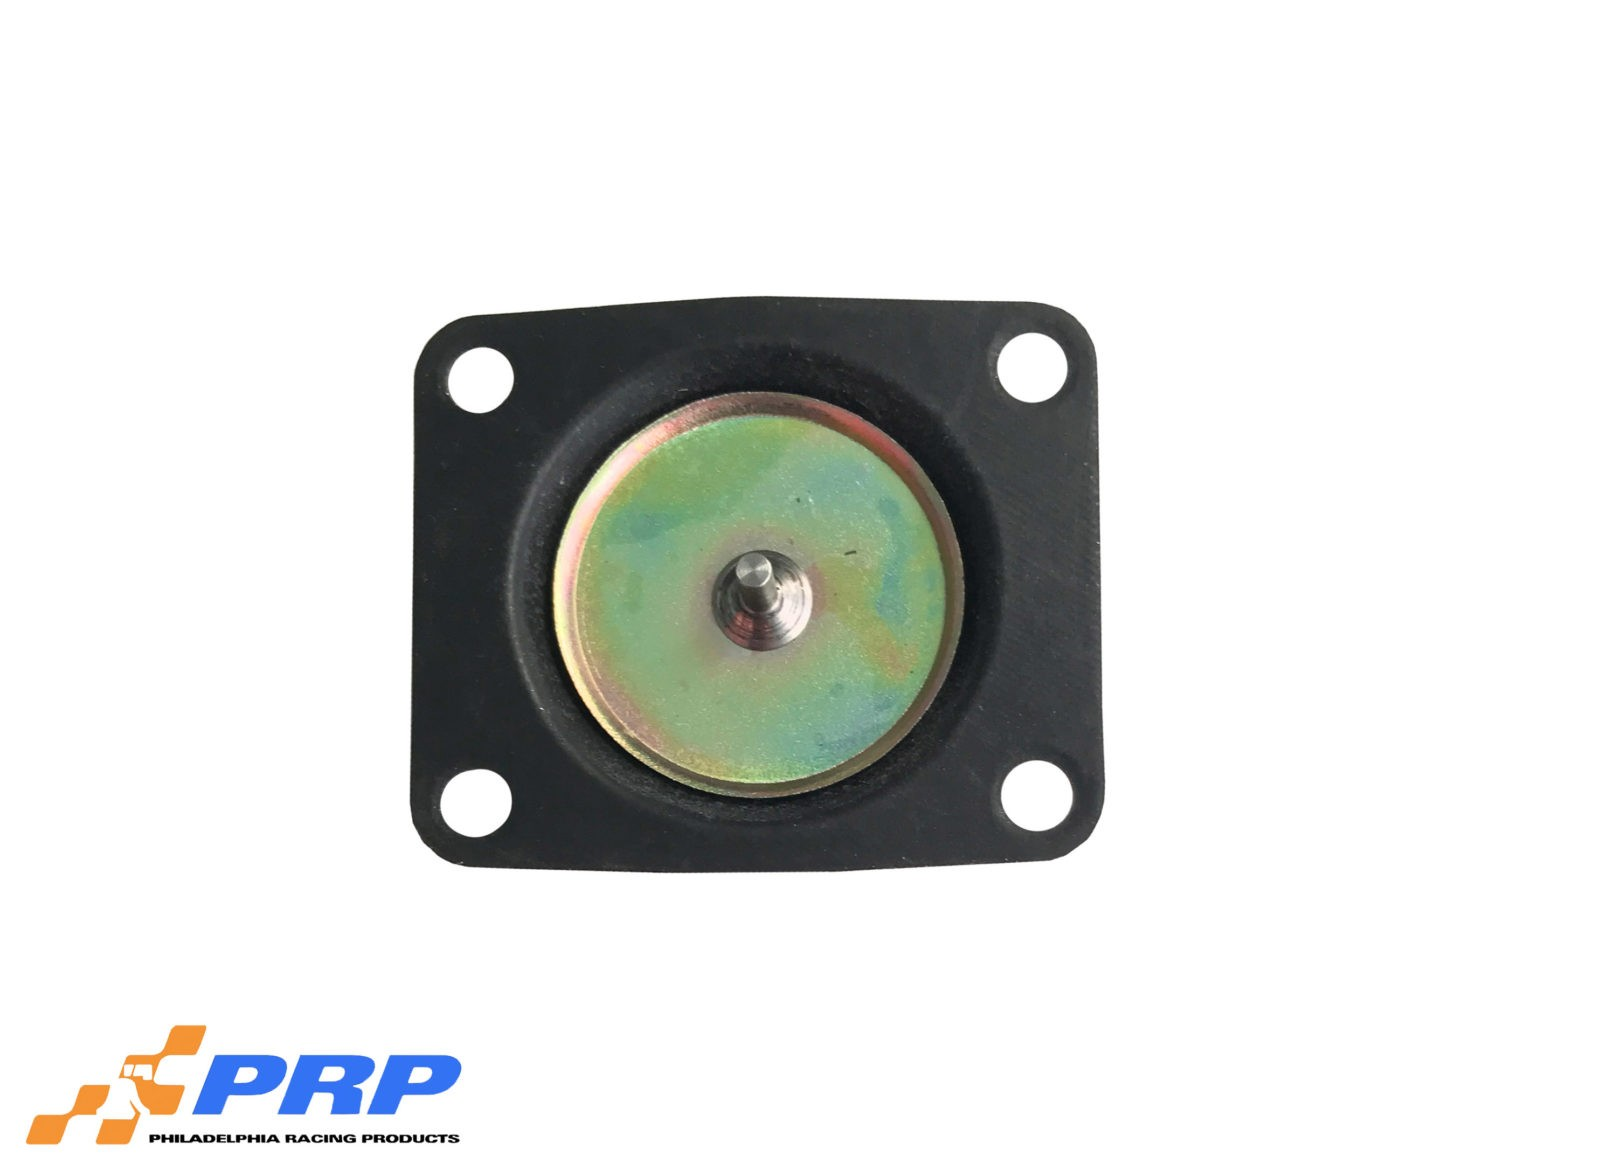 Black Replacement Fuel Pressure Regulator Diaphragms from by PRP Racing Products